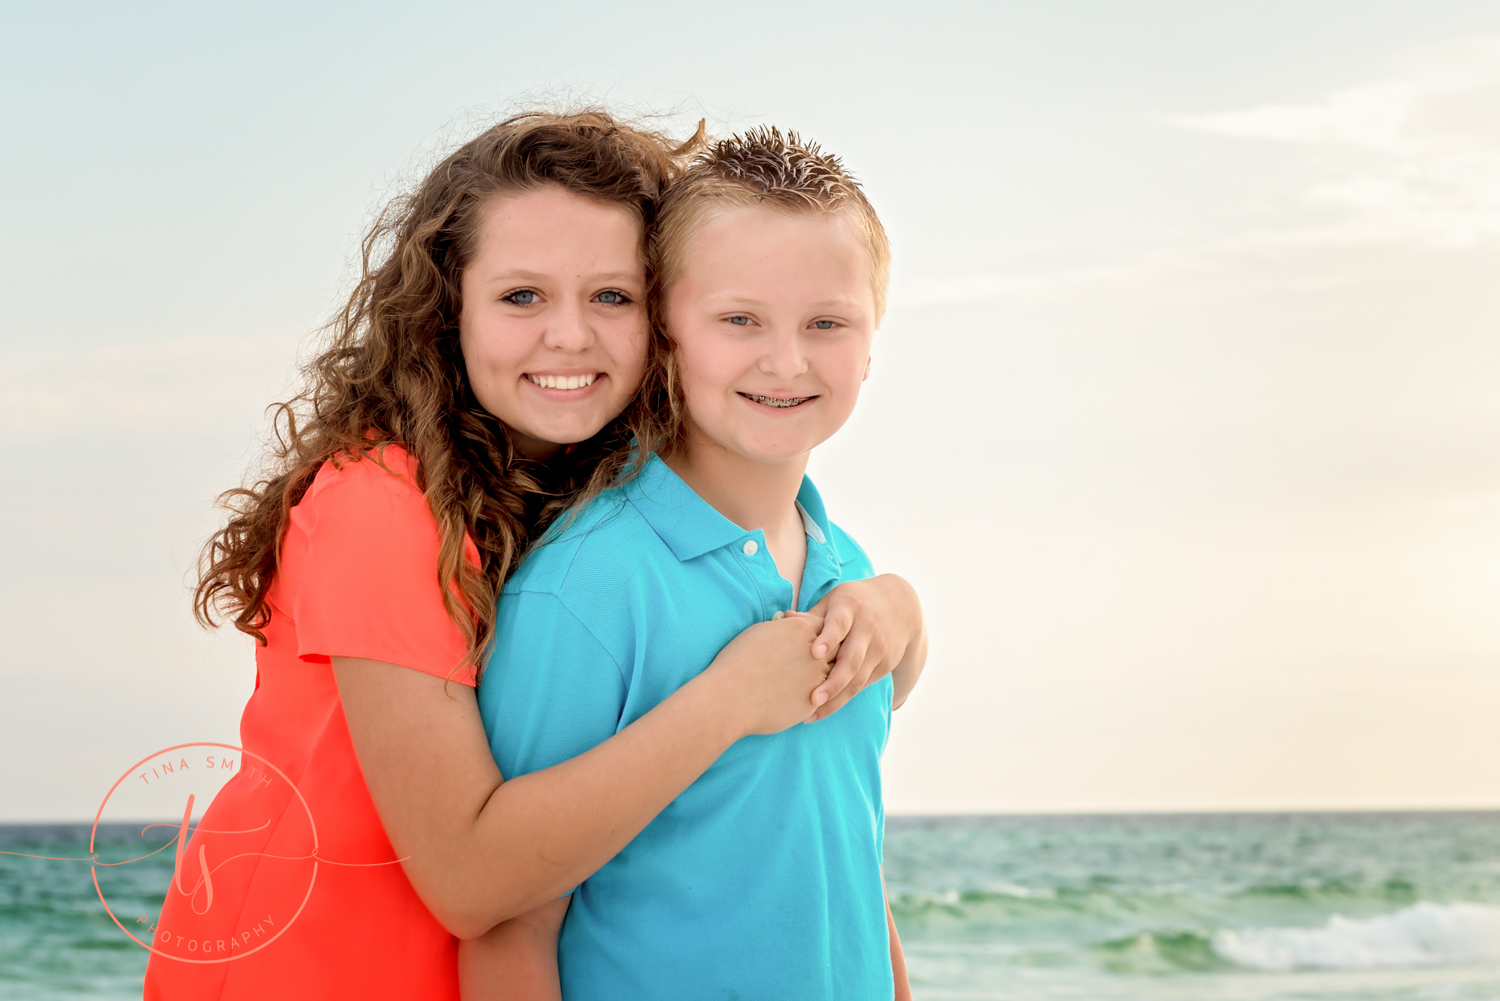 brothers and sister hugging and smiling on the beach for photography